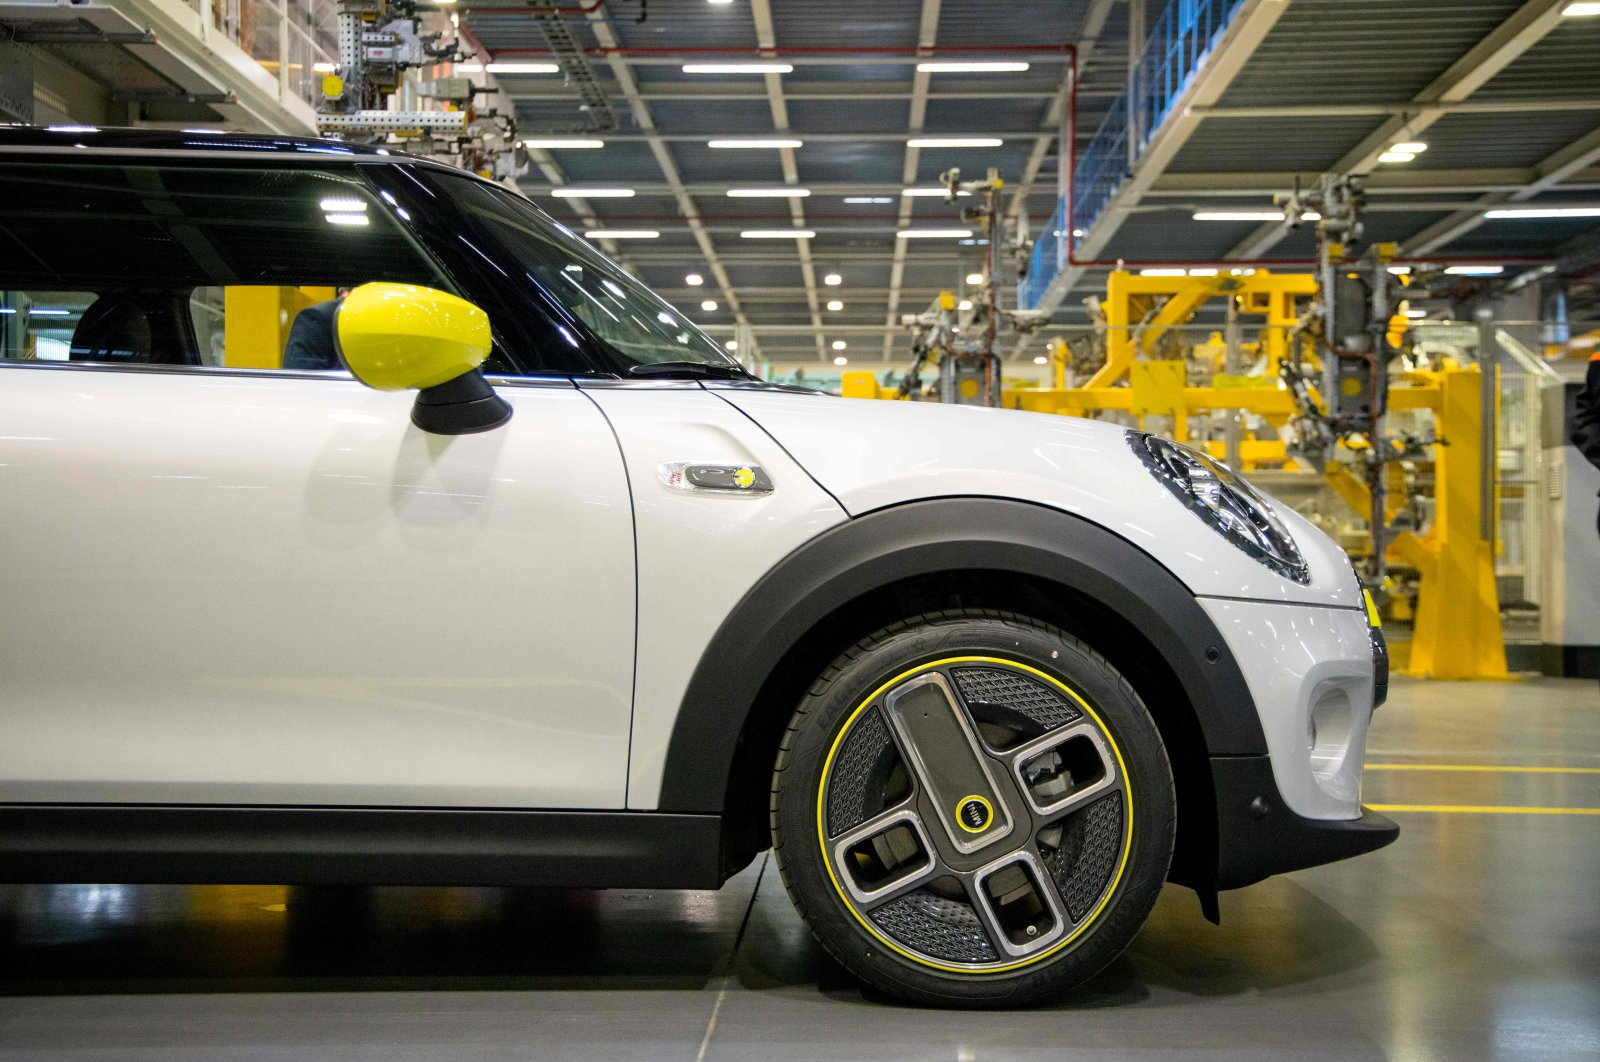 The new MINI electric car is unveiled at the BMW group plant in Cowley, near Oxford, July 9, 2019. (AFP Photo)